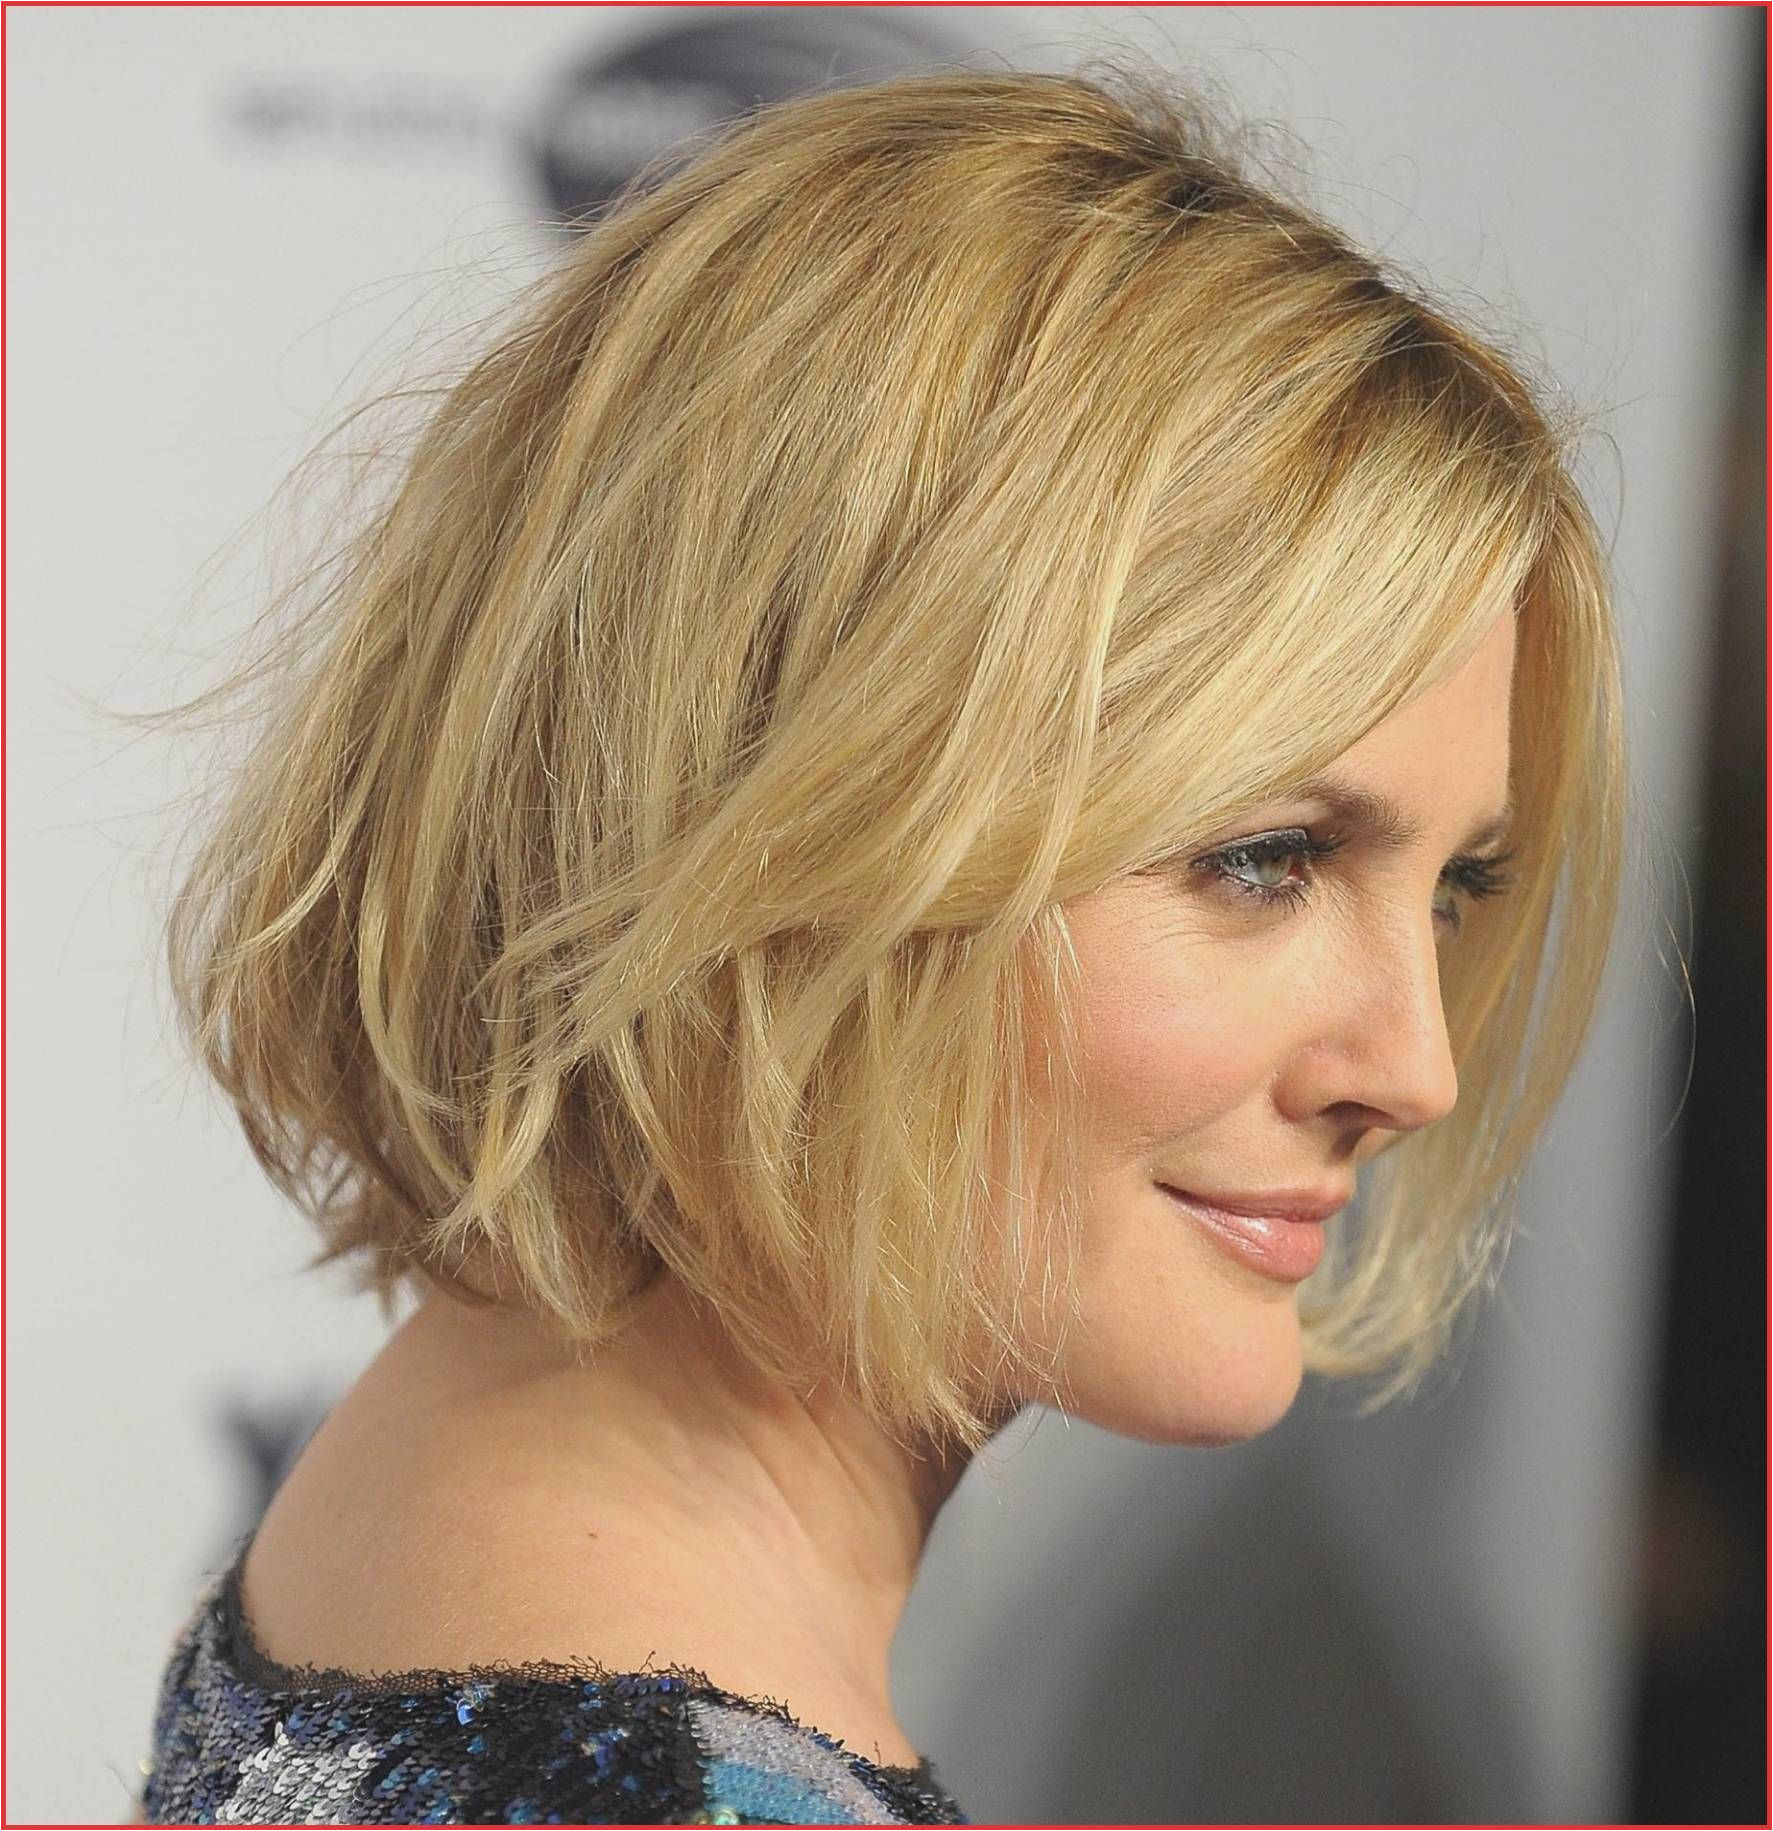 New Hairstyles for Chin Length Hair Shoulder Length Hair Styles Beautiful Medium Length Bob Hairstyles